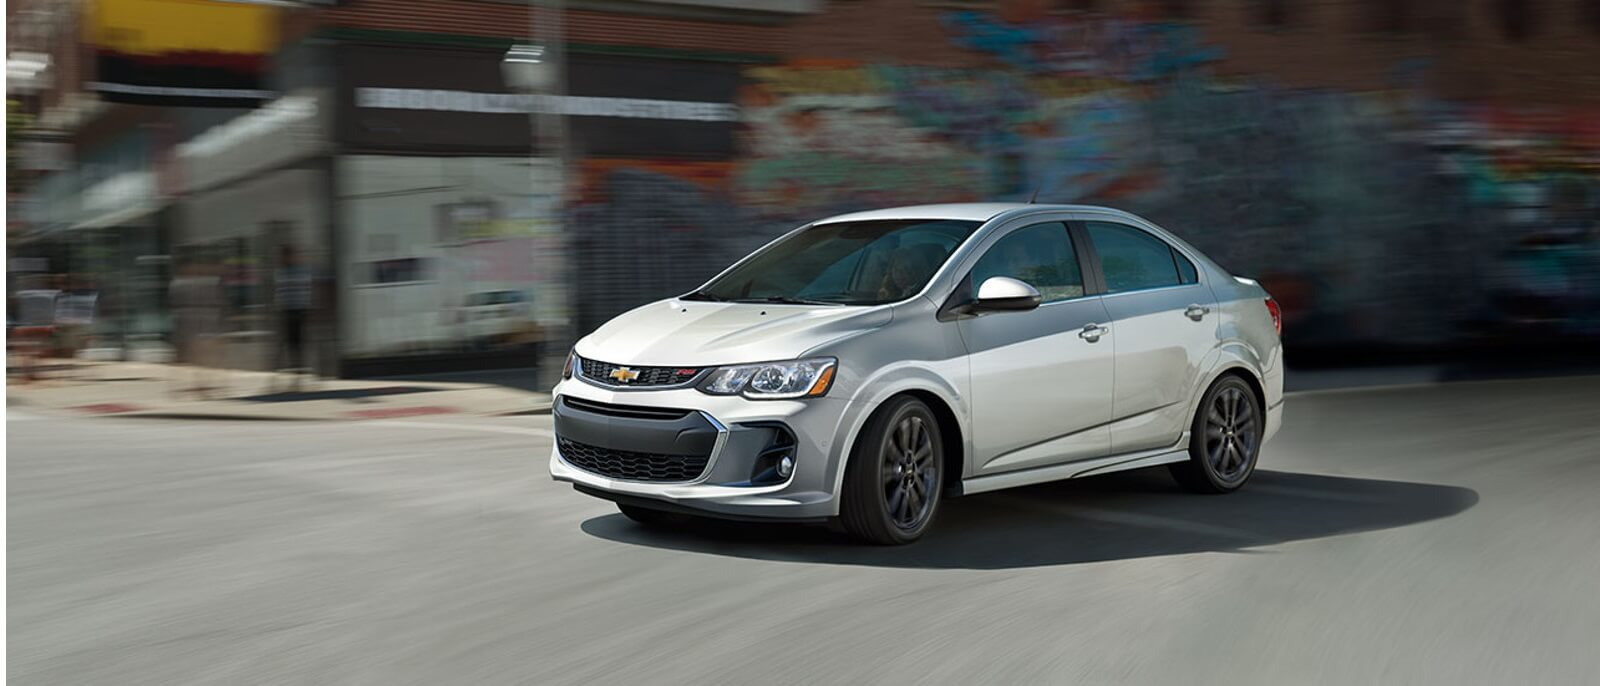 Chevrolet Sonic Repair Manual: Cigarette Lighter Receptacle Replacement